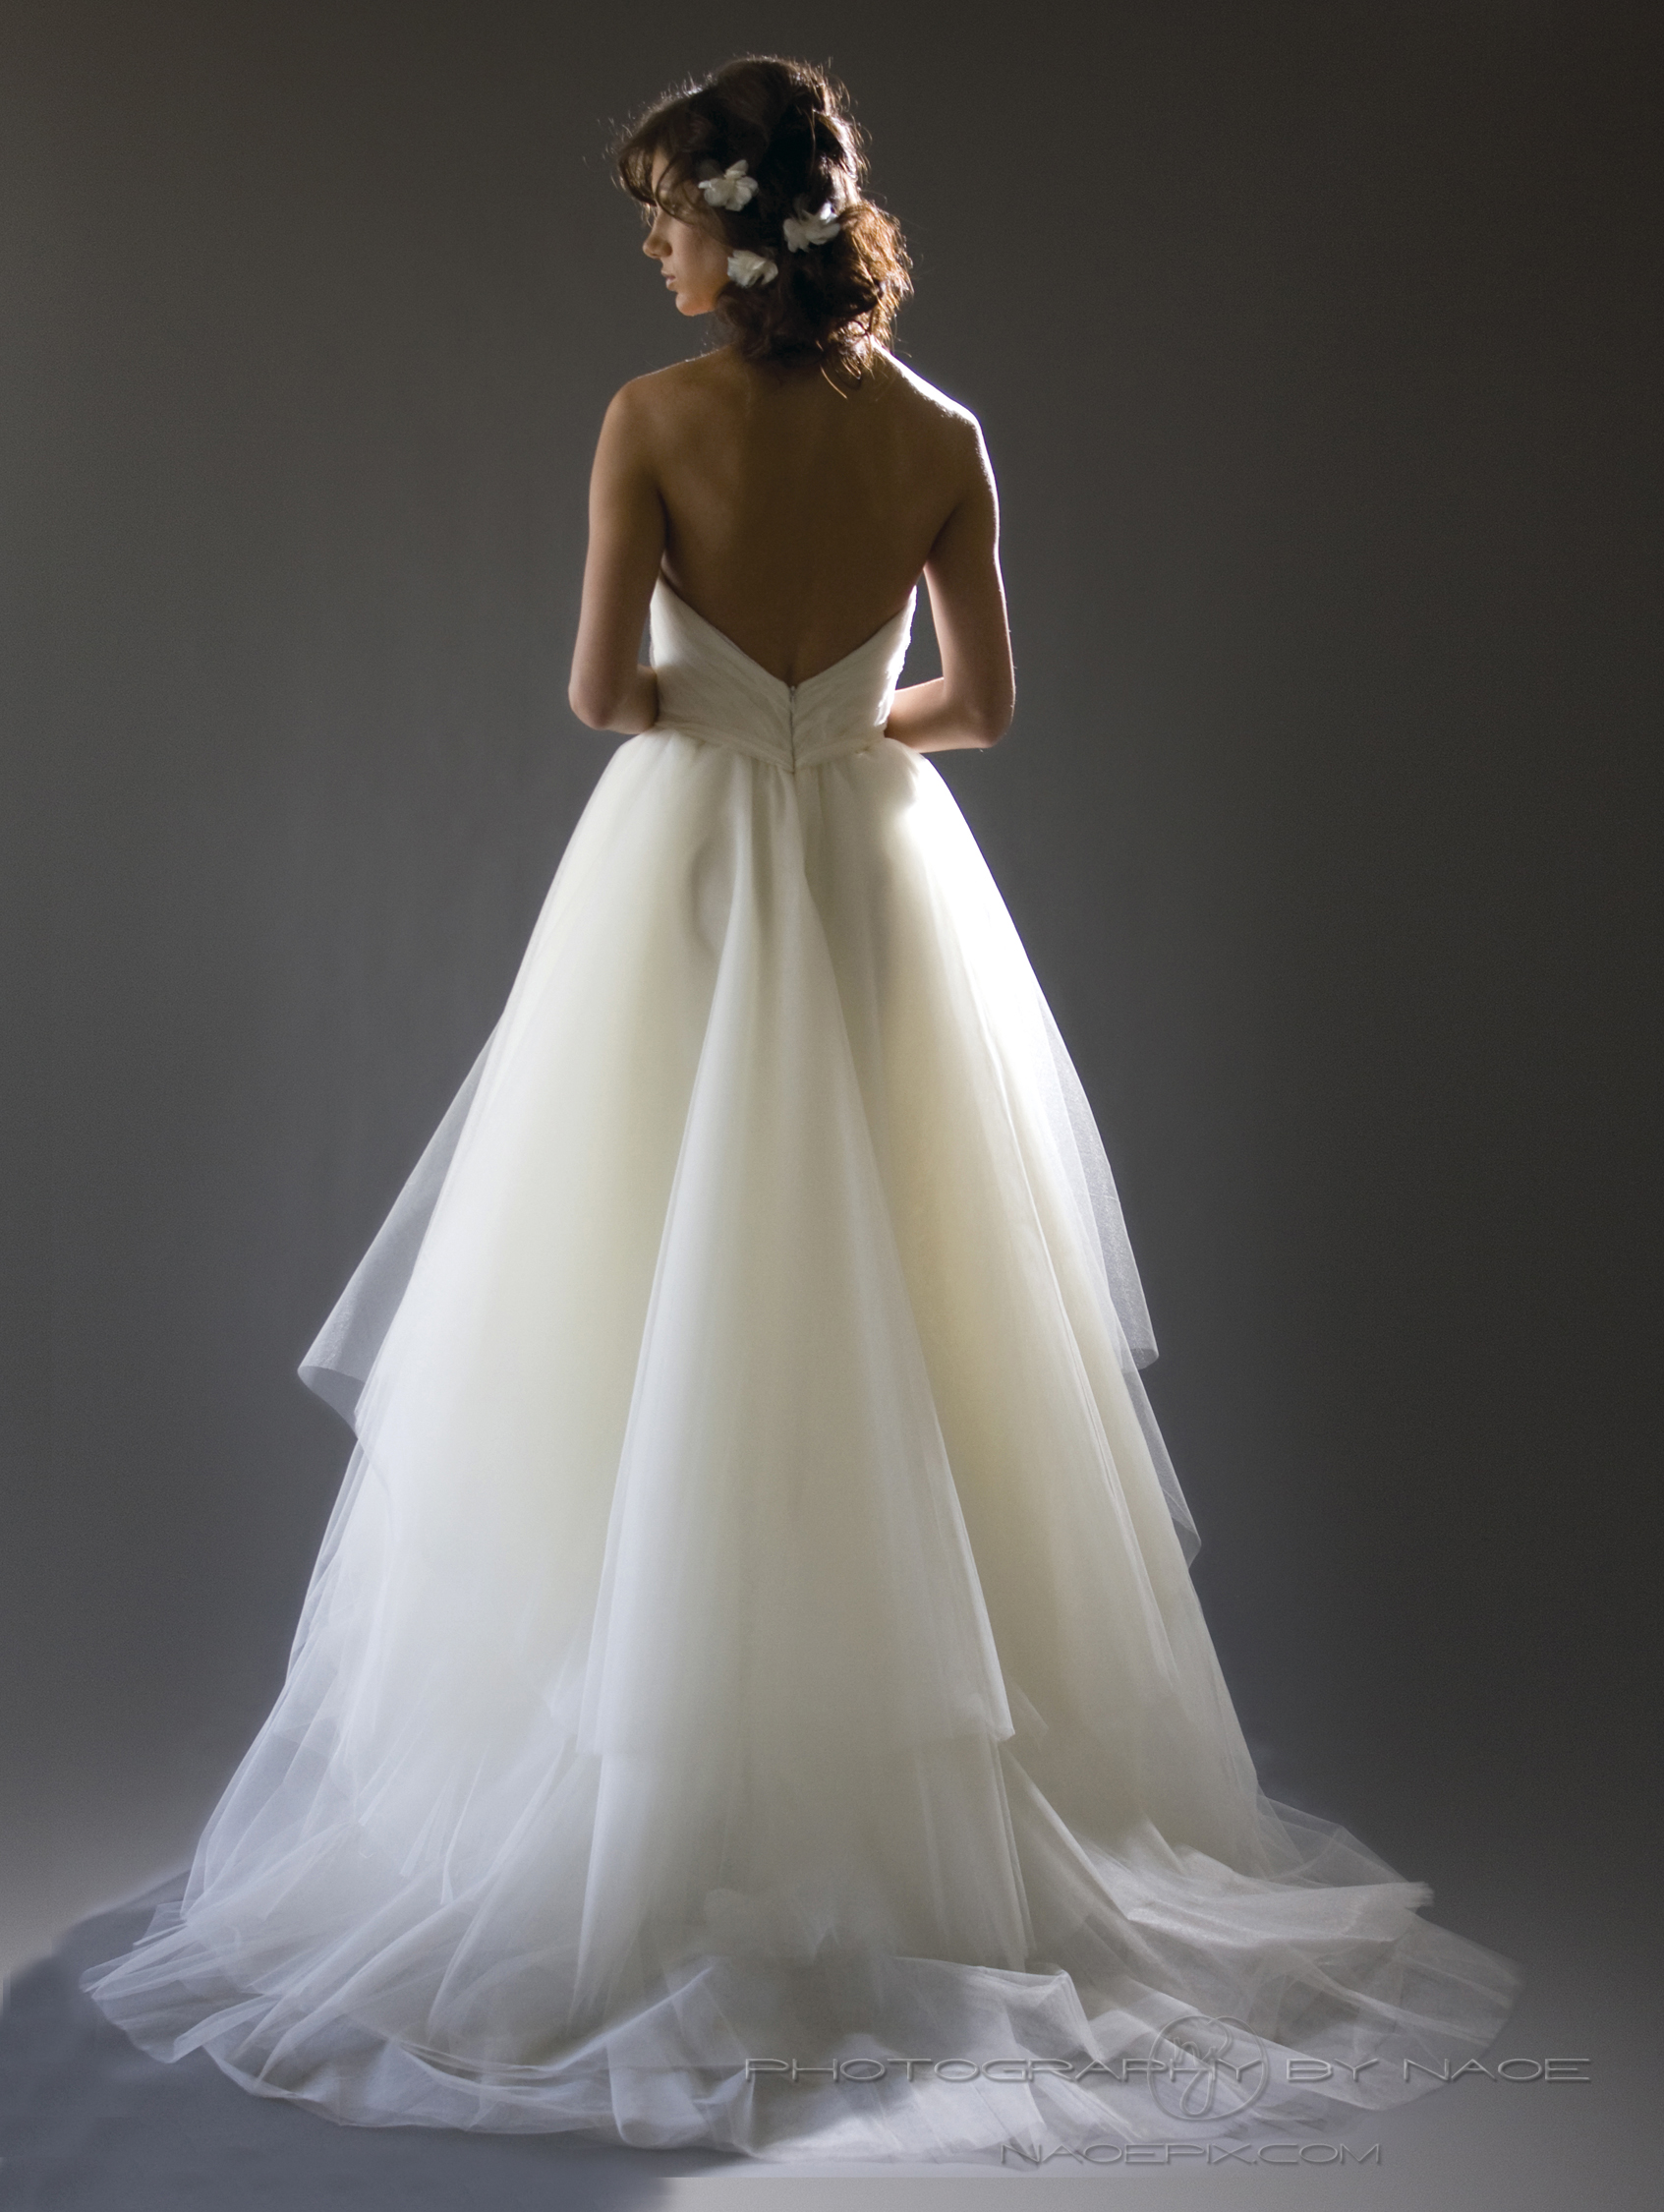 Wedding-dress-spring-2013-bridal_gown-cocoe-voci-3-back.original